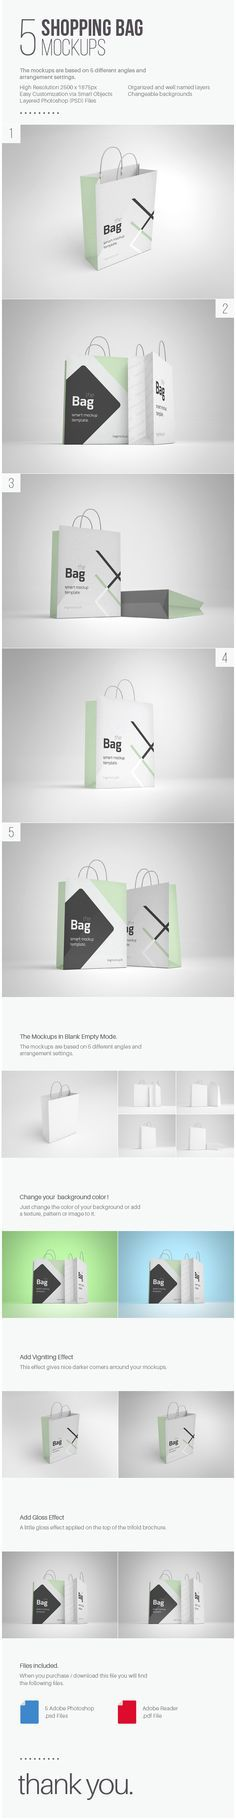 A free shopping bag mockup templates; psd & smart object.